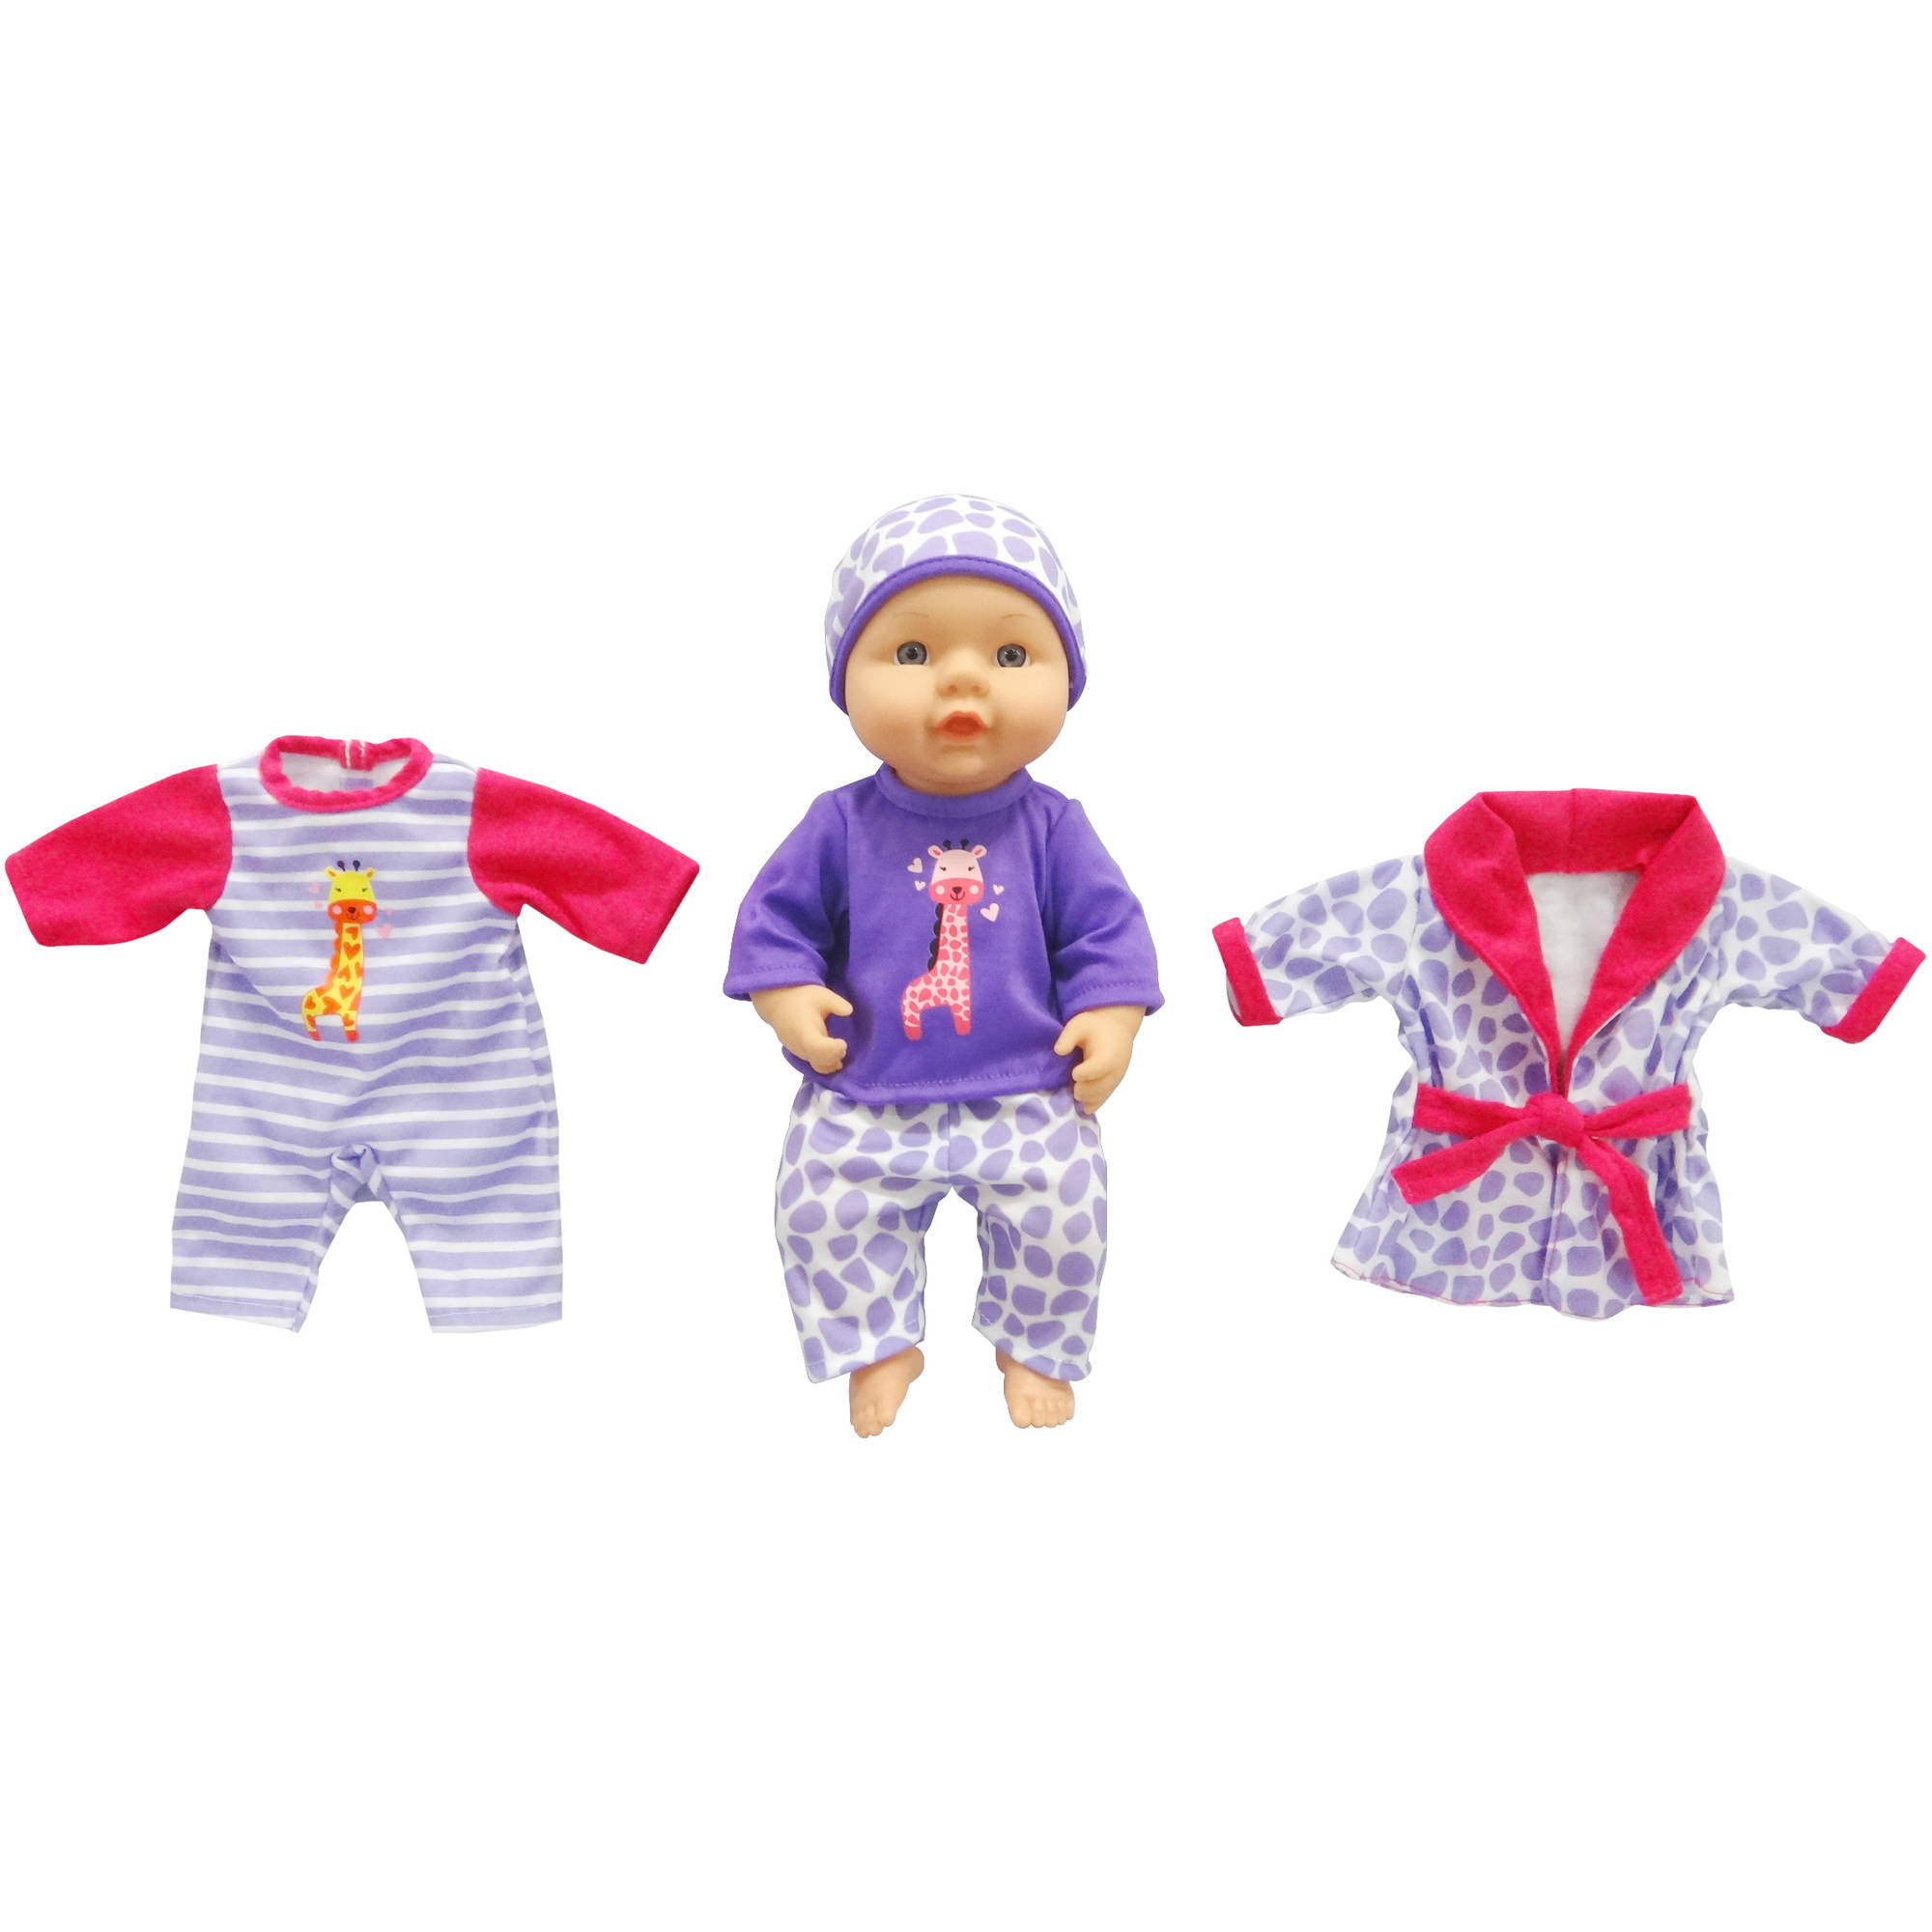 My Sweet Love 12 5 Quot Baby With Outfits Purple Walmart Com